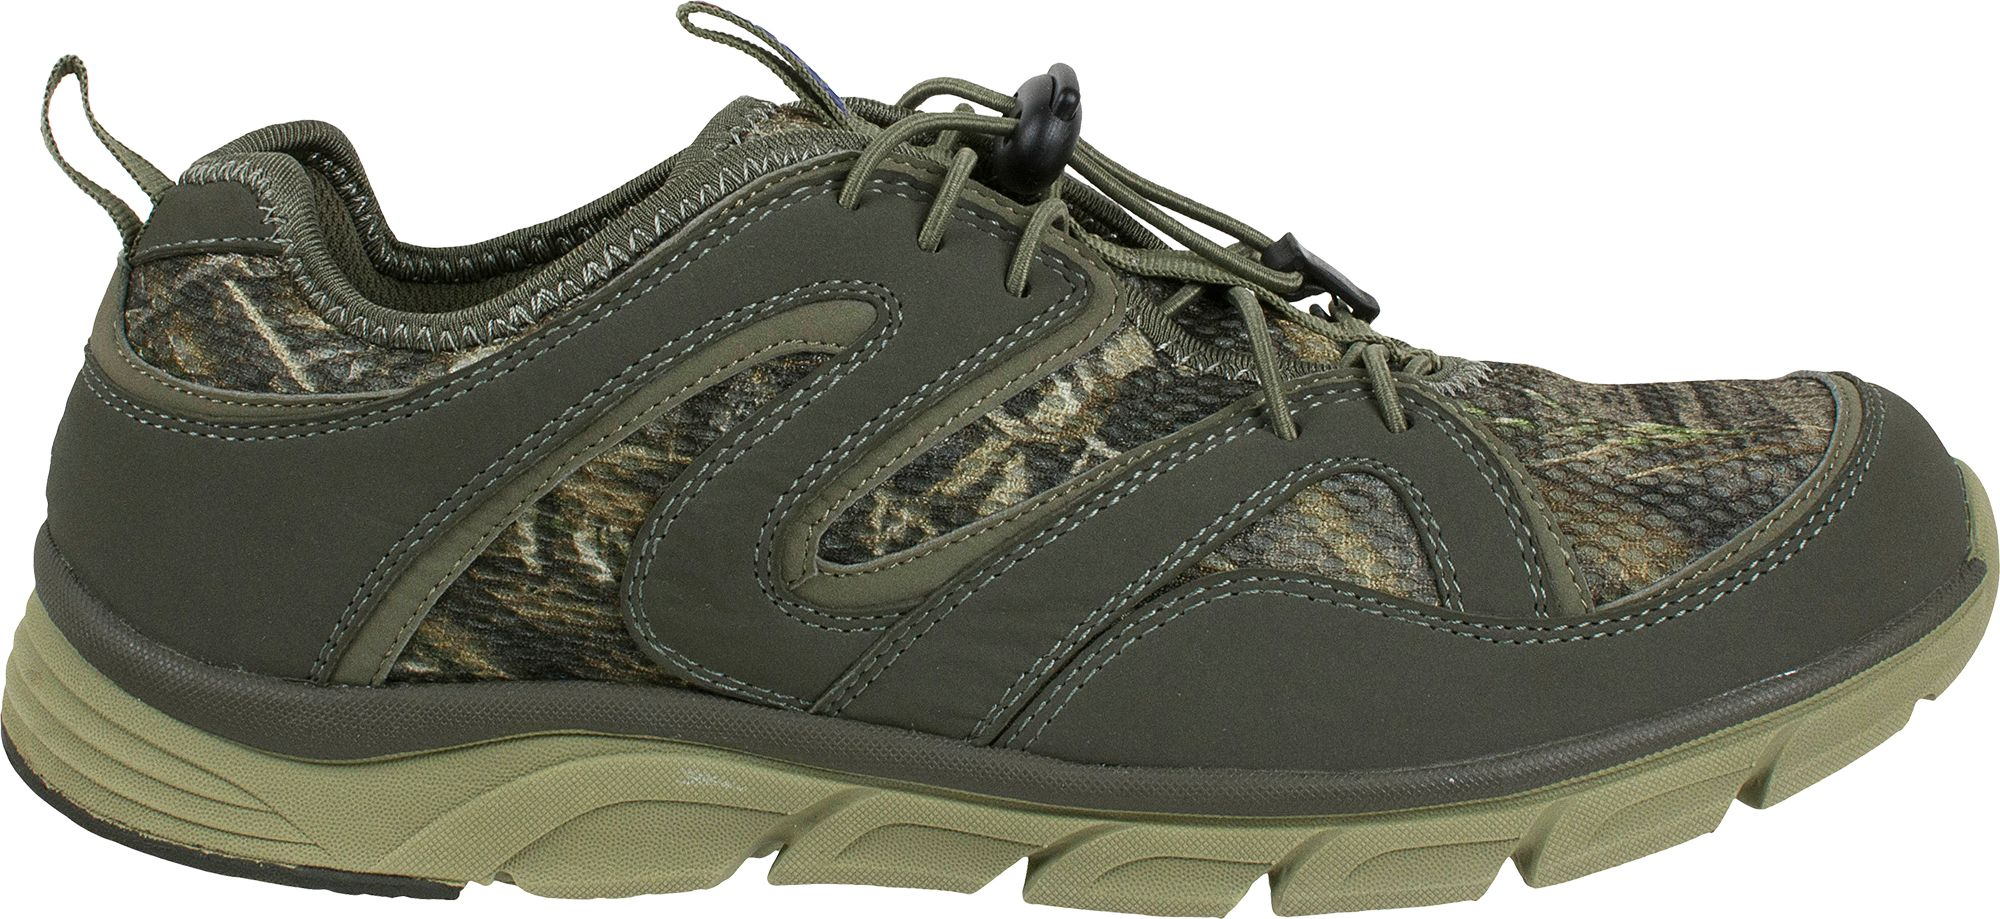 Field And Stream Water Shoes Womens